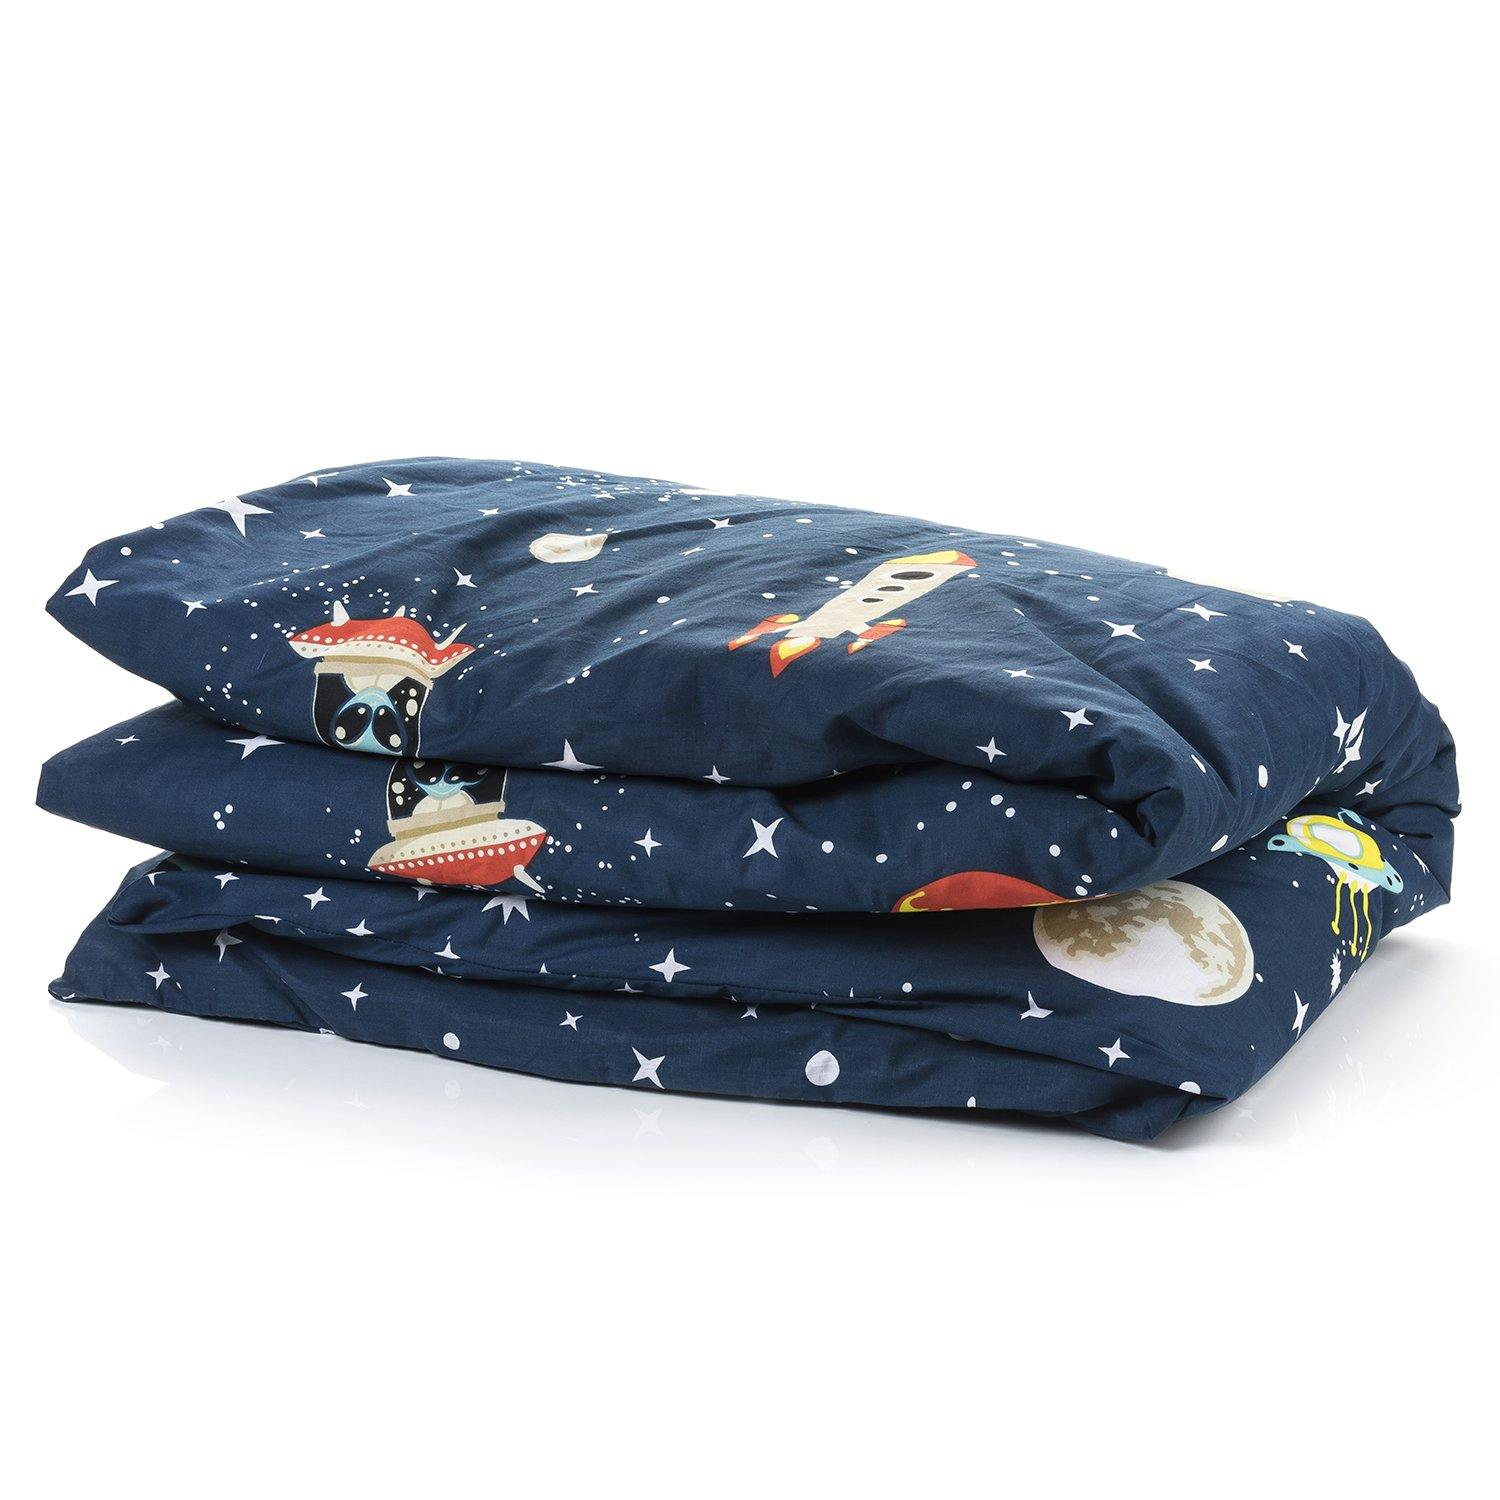 Folded space duvet